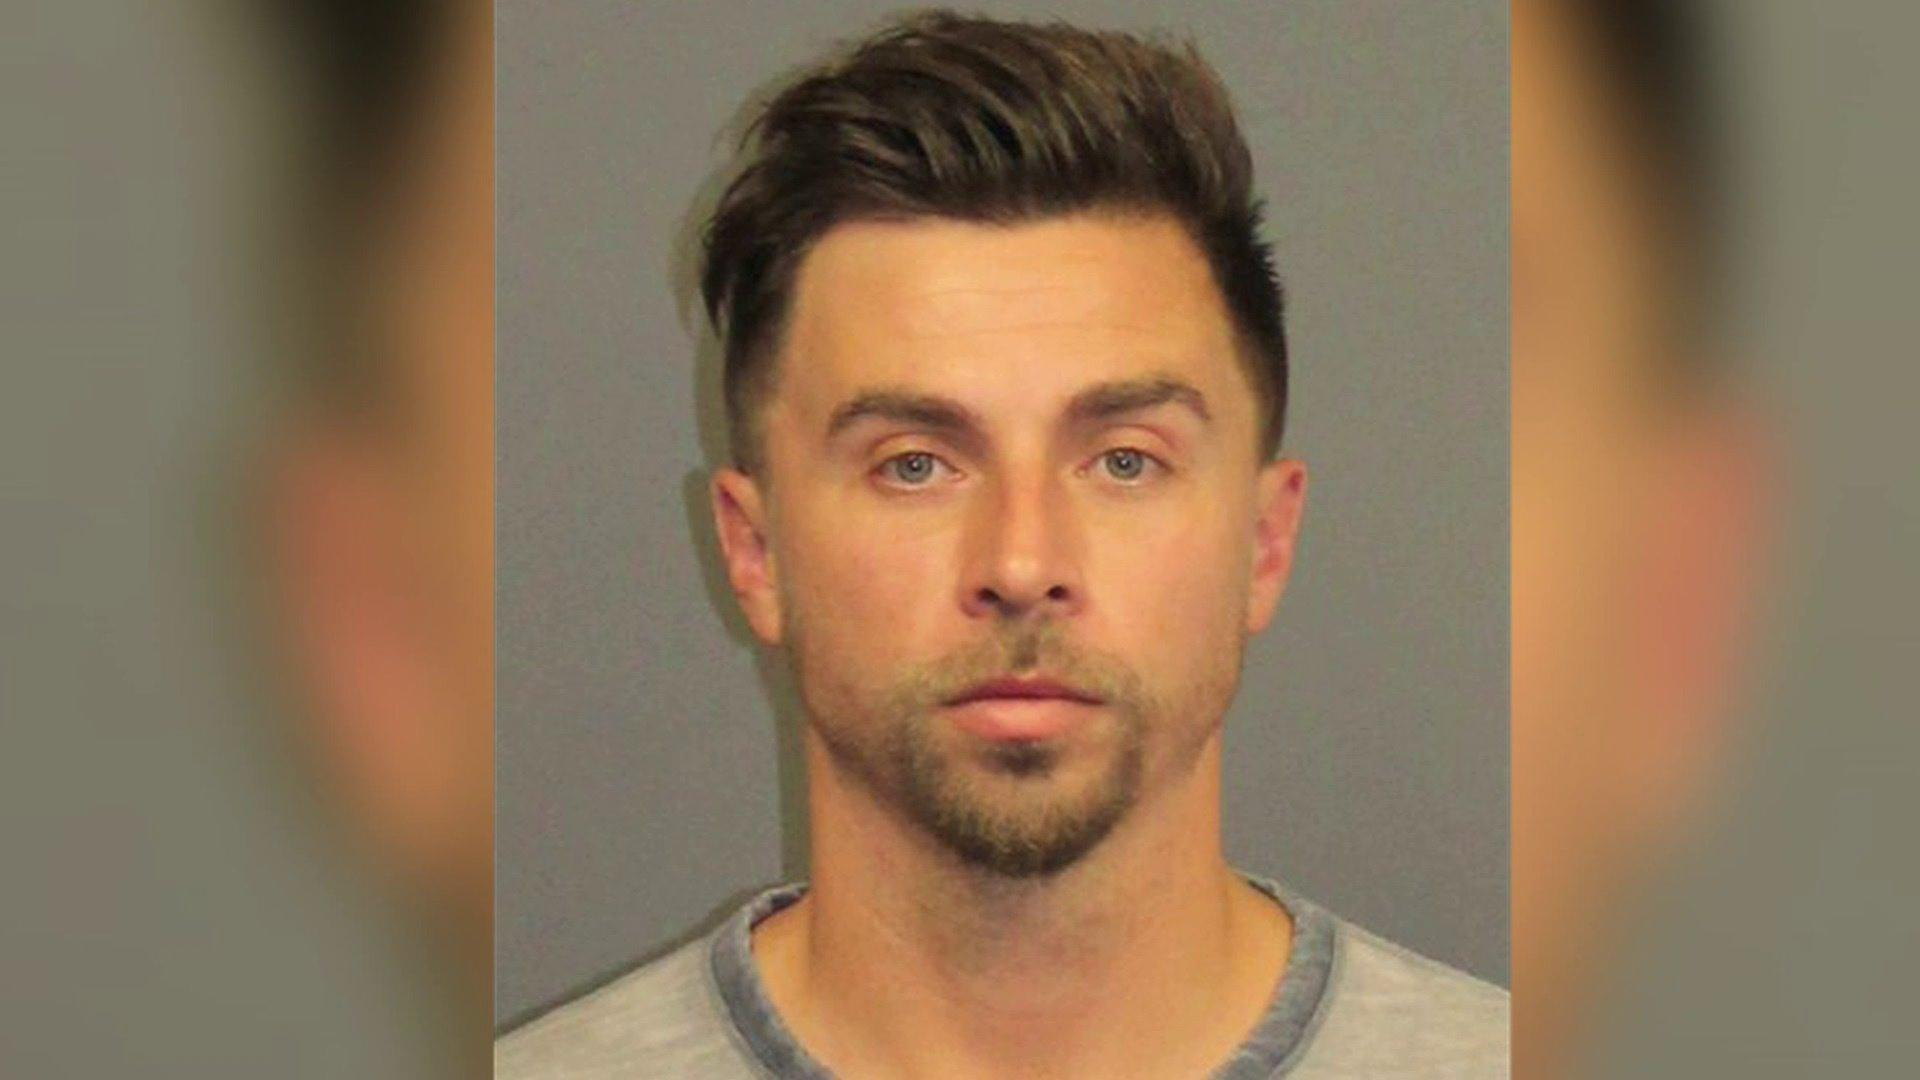 HGTV star found guilty of molesting 10-year-old girl in Connecticut